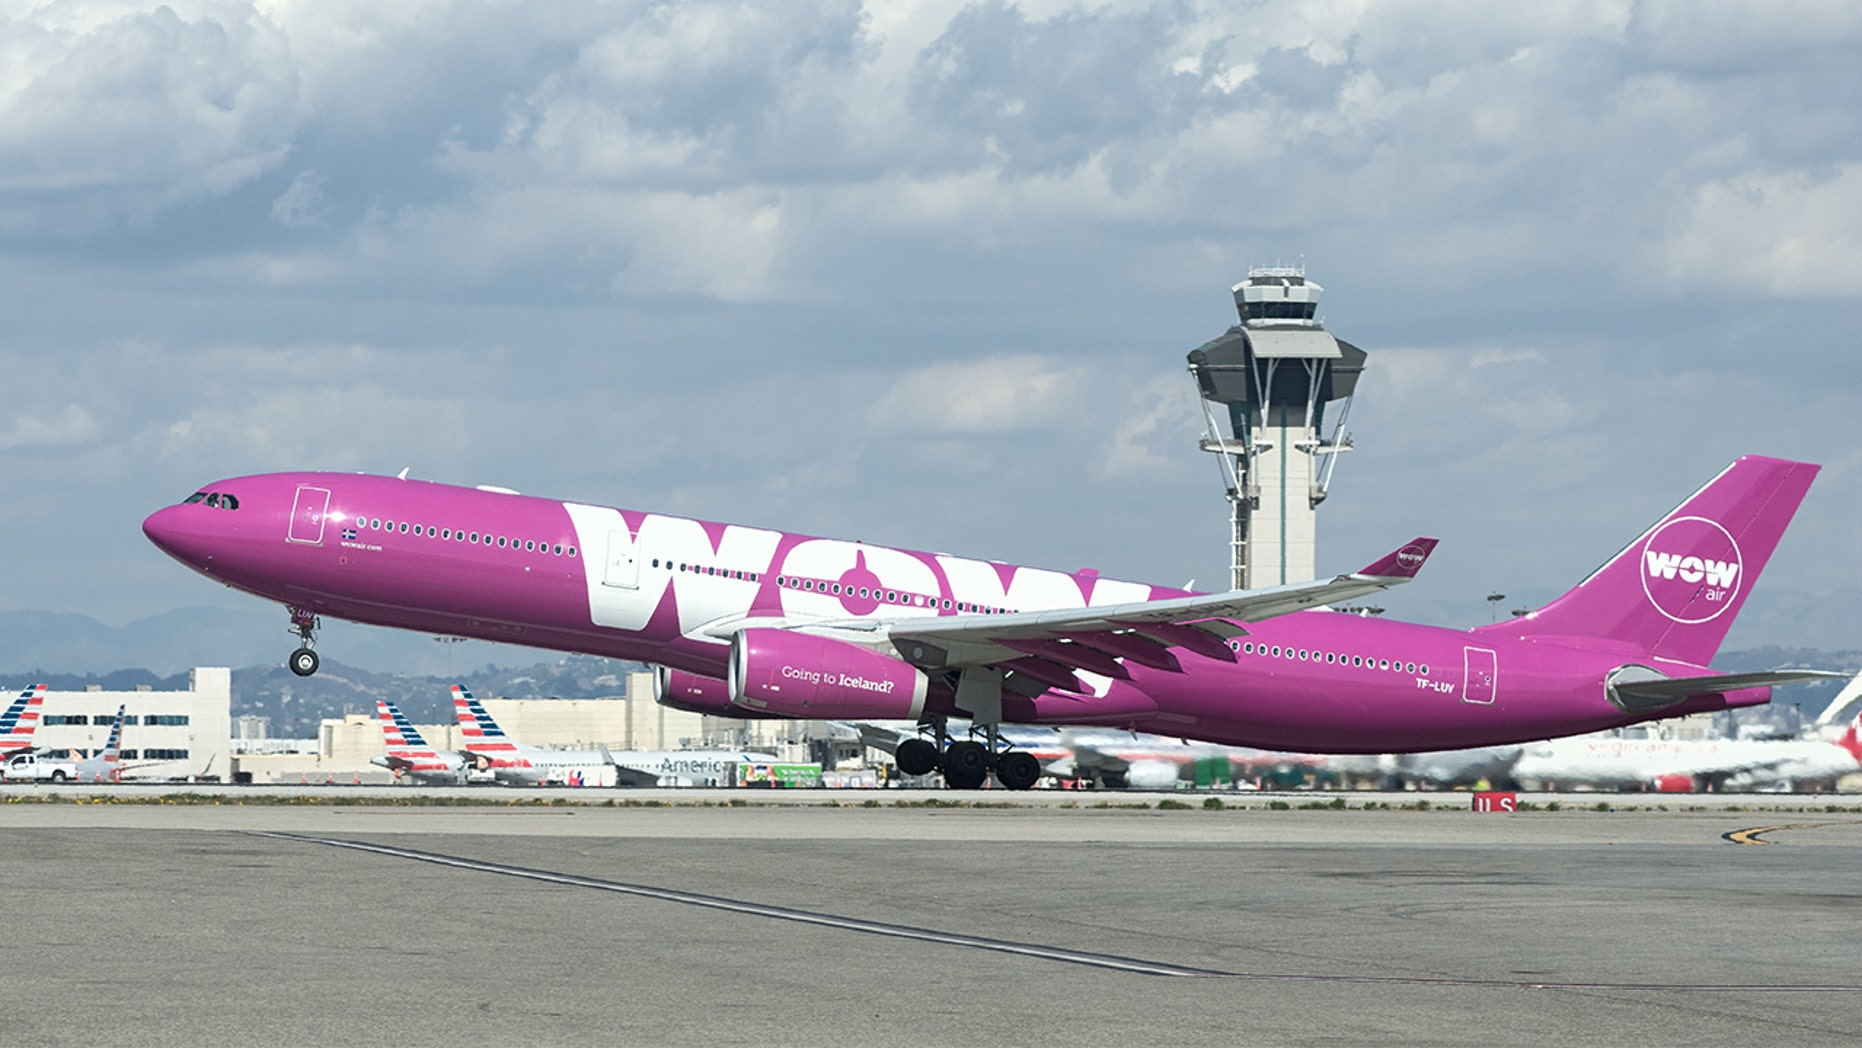 WOW Air announced plans toscale back the number of planes it flies amid struggles to stay afloat.